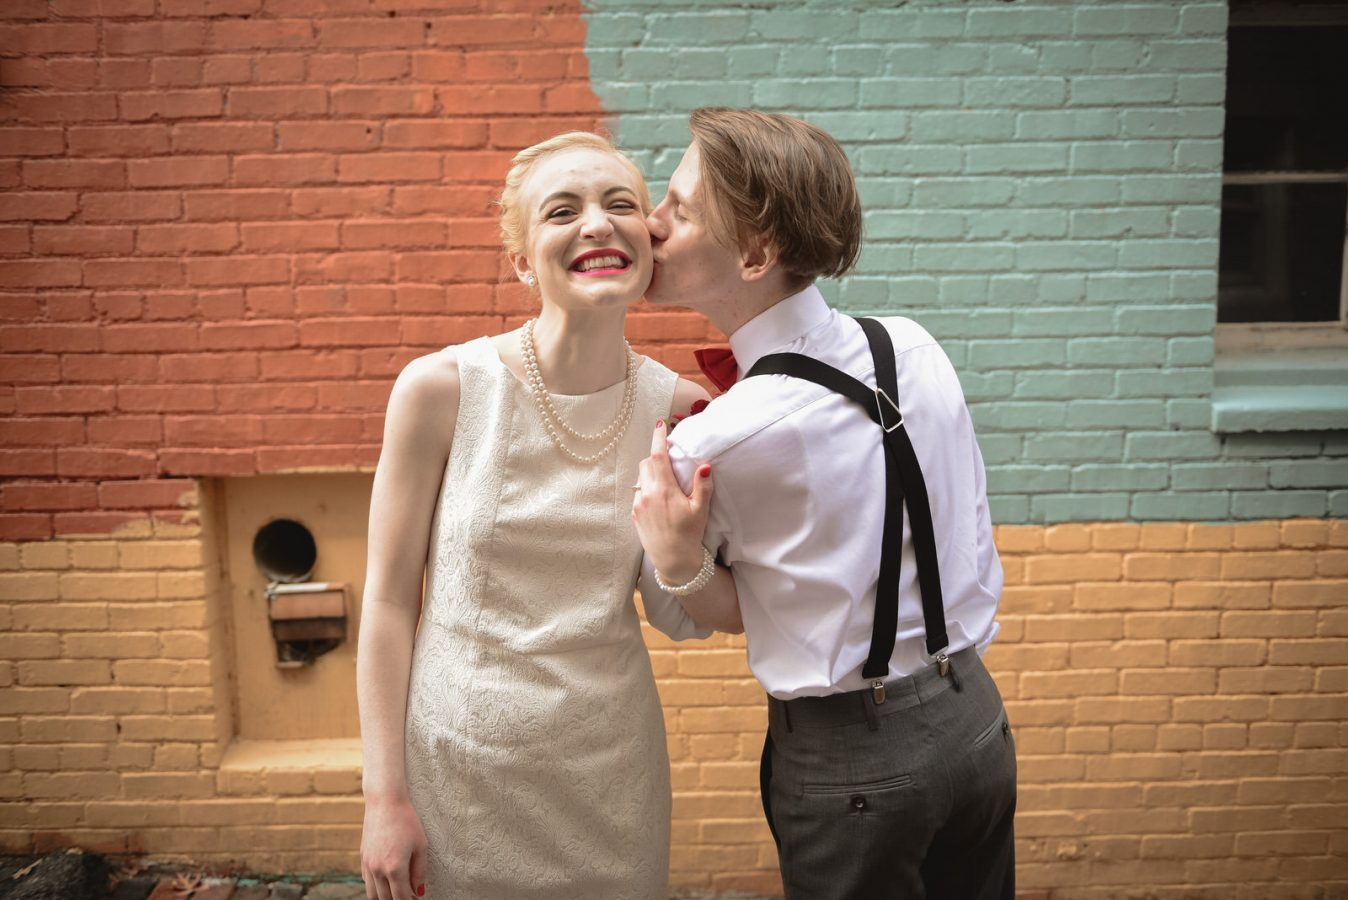 Winter-wedding-athens-ohio-photographer-photography-elopement-weather-court-street-diner